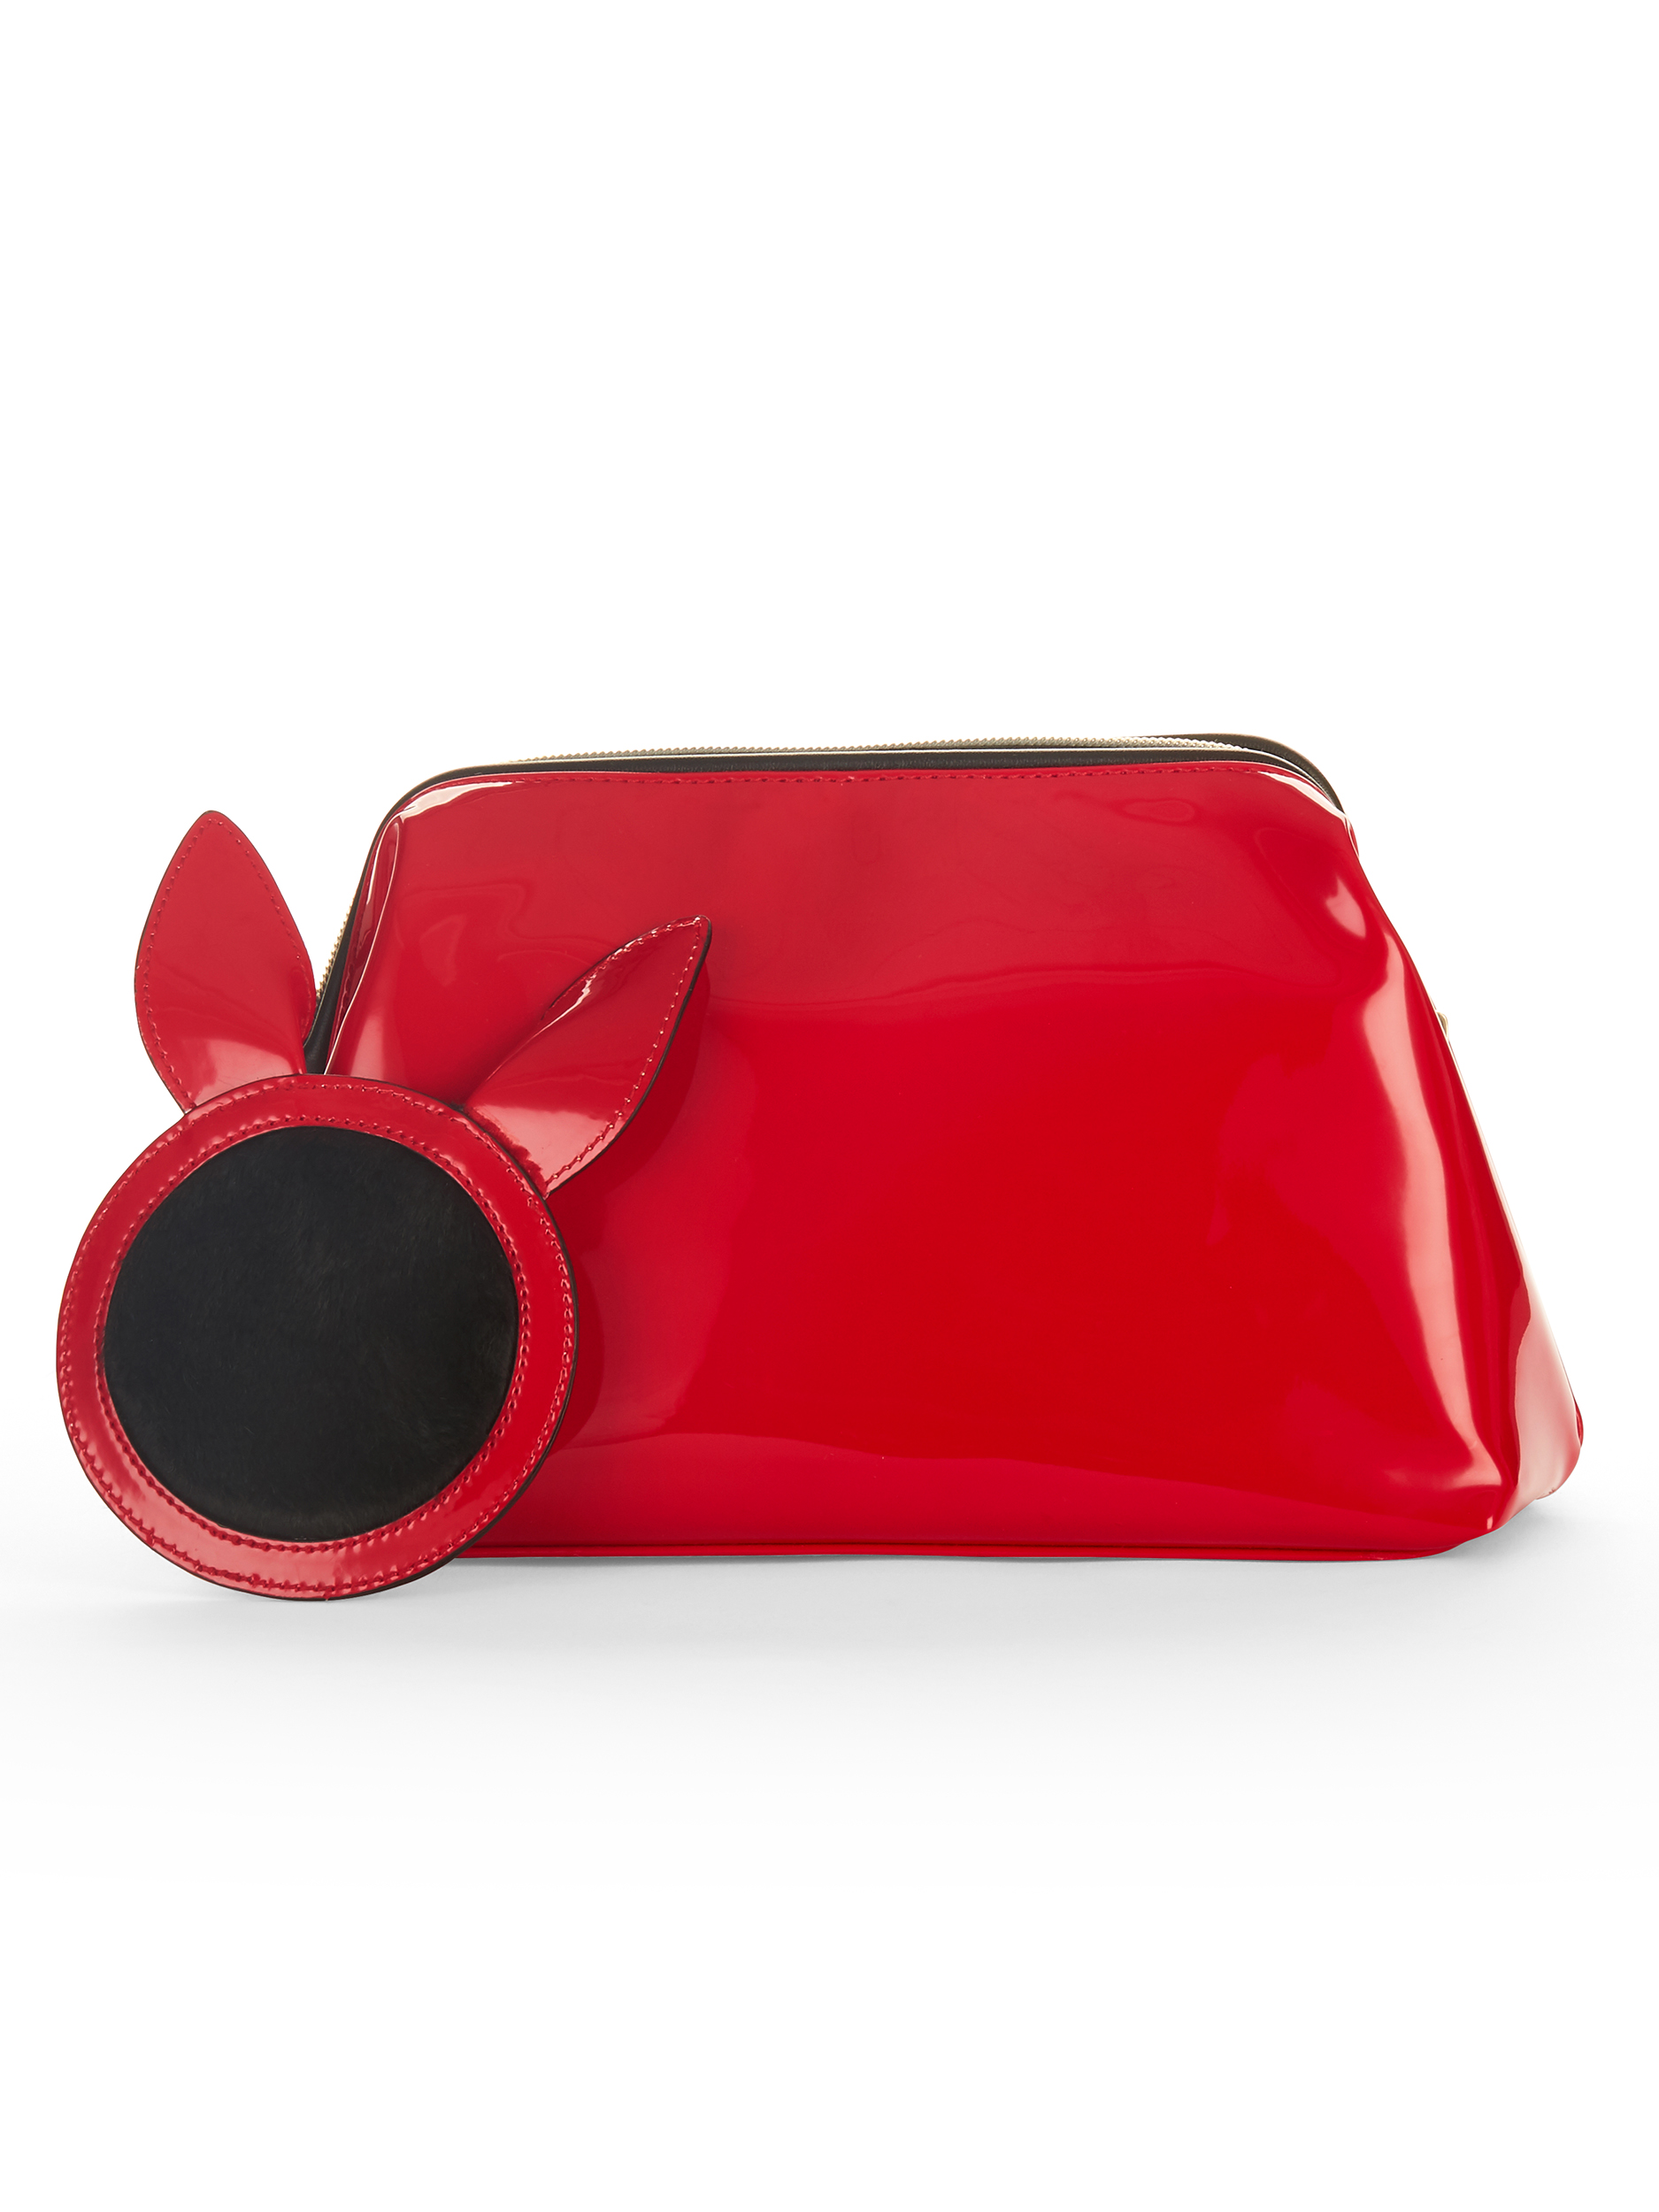 03c8e08900e8 Kendall + Kylie for Walmart Katie Red Patent Cosmetic Bag & Mirror